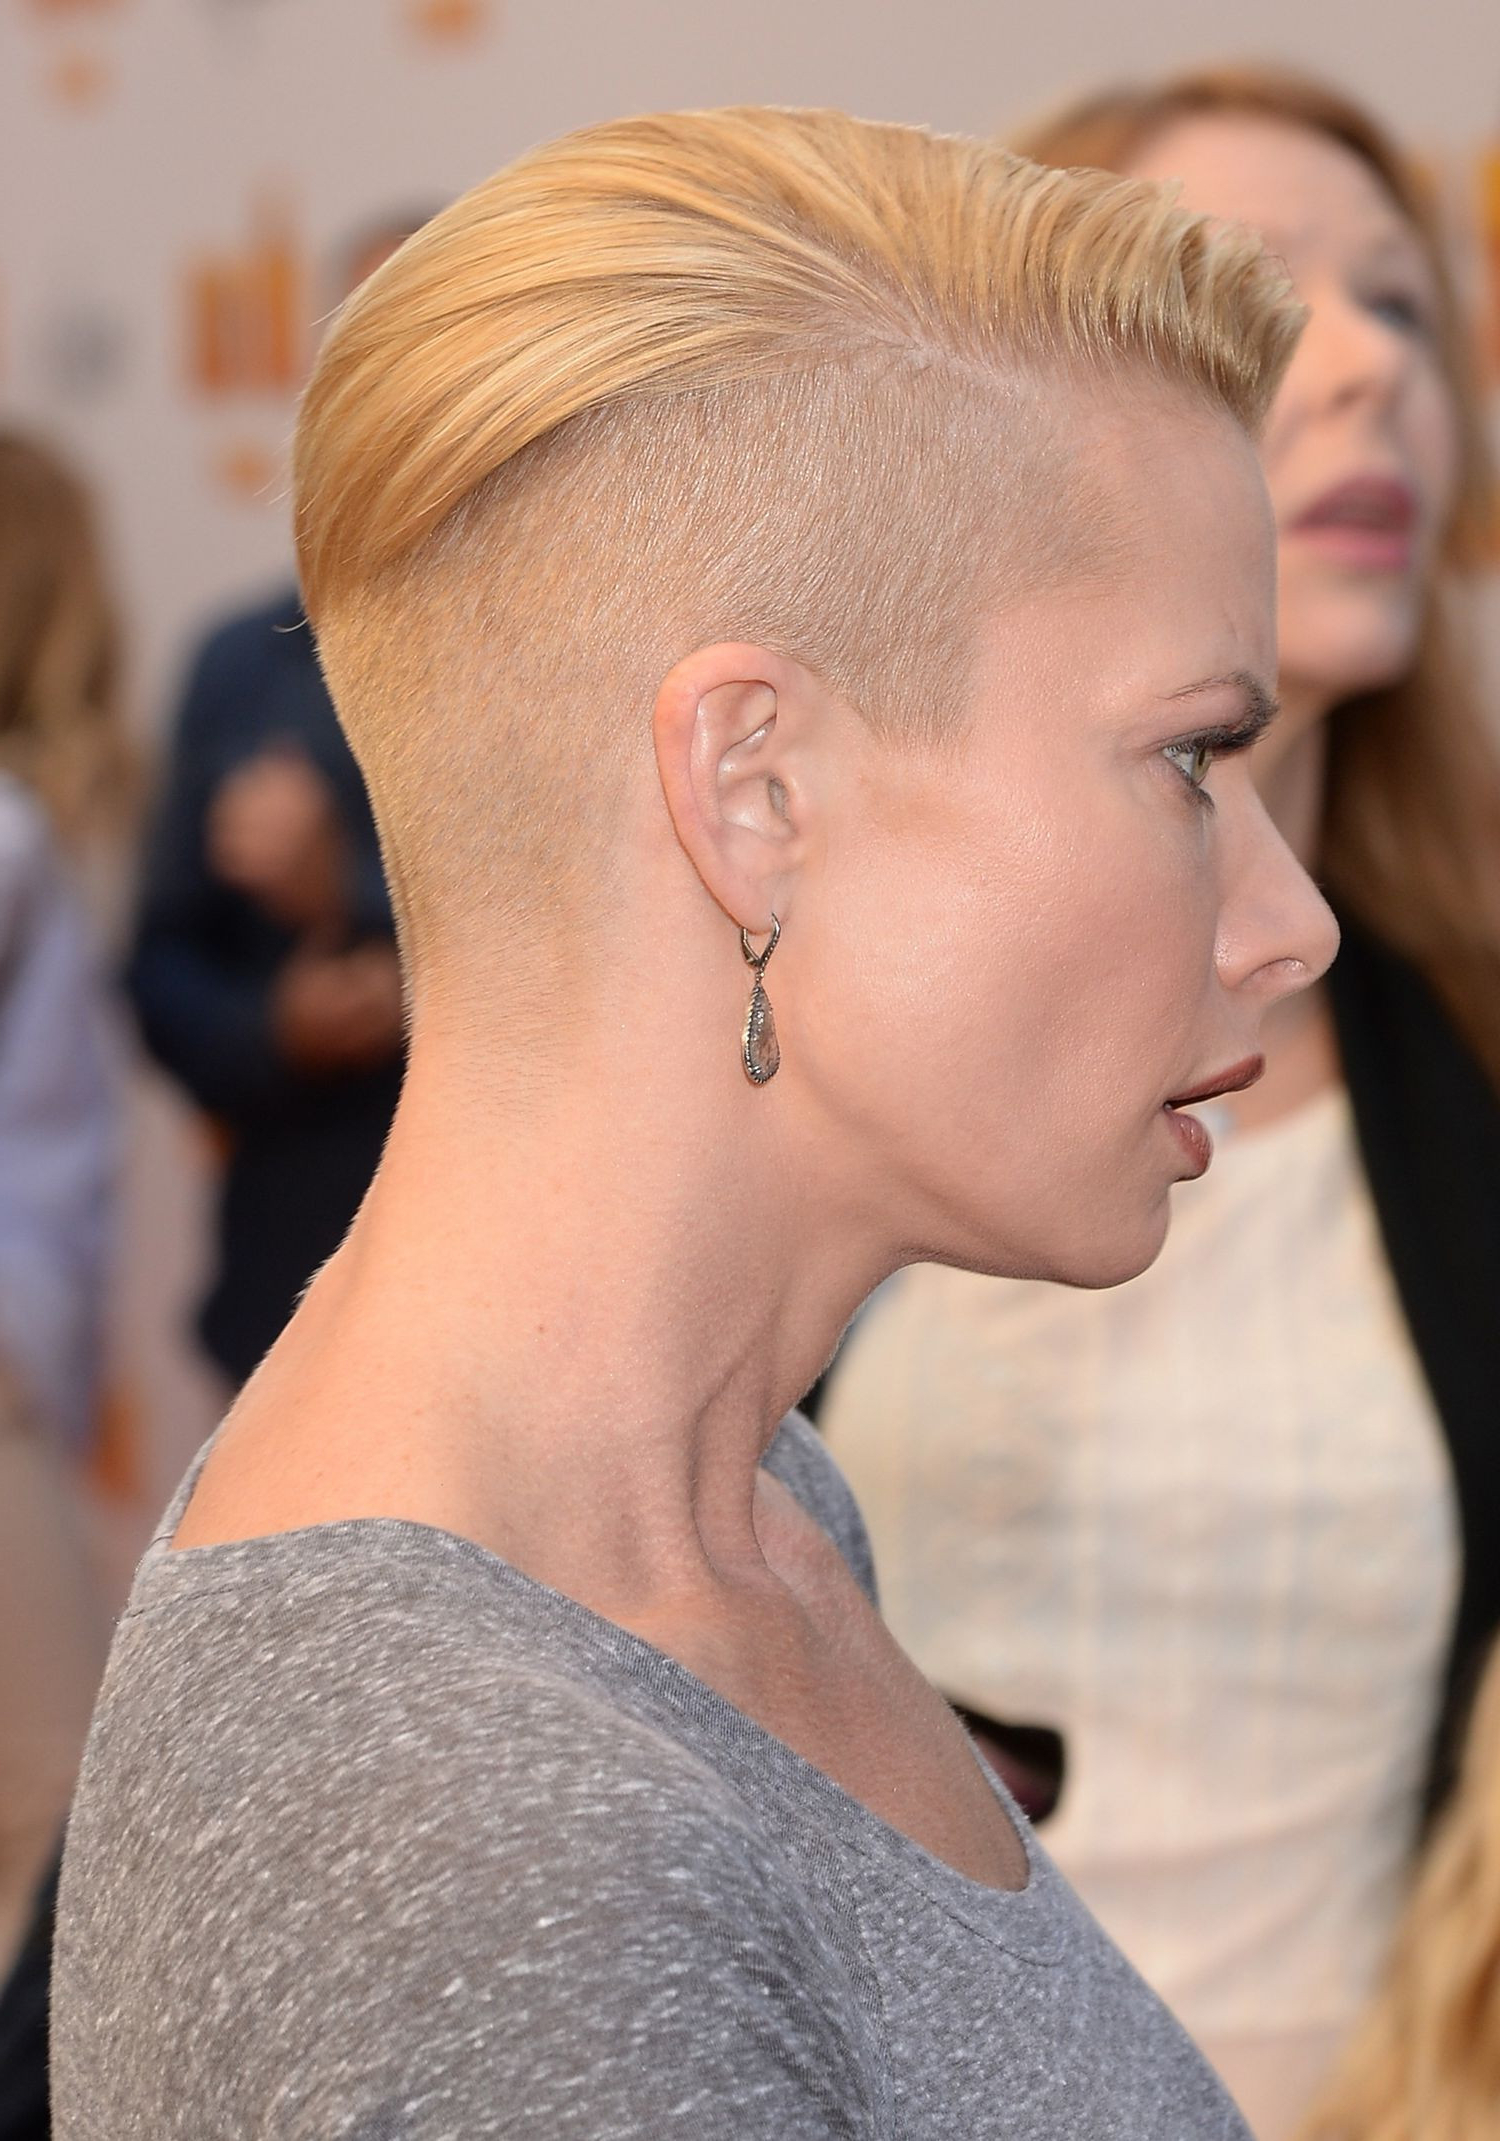 Pictures On Short Hairstyles With Side Shaved, – Curly Hairstyles For Short Hairstyles One Side Shaved (View 13 of 25)